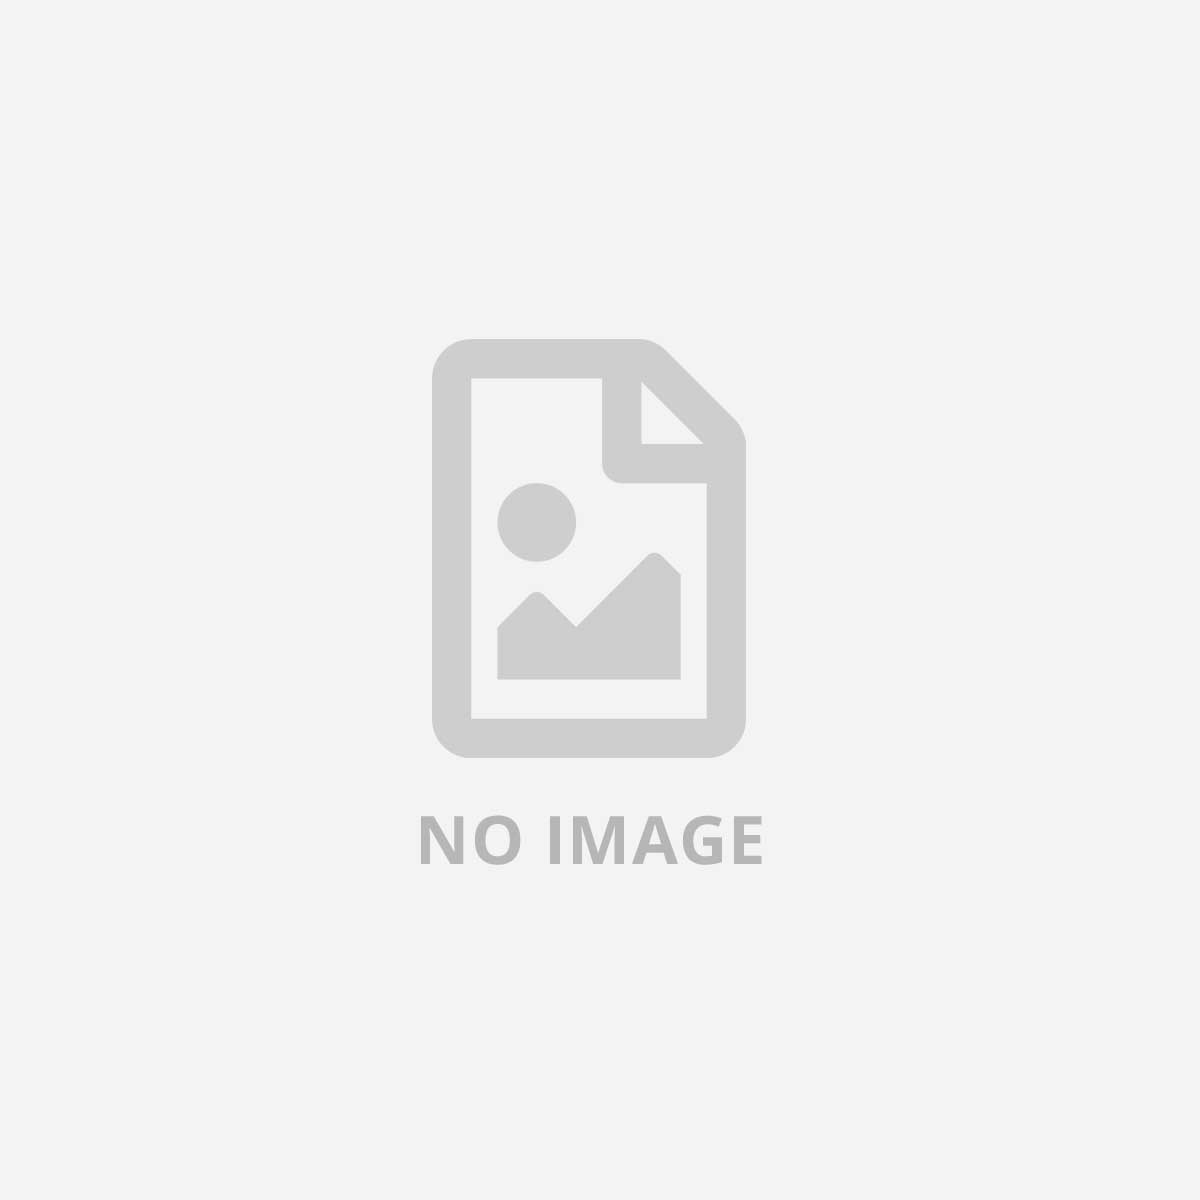 BLACK AND DECKER BLACKDECKER BDCD8-QW